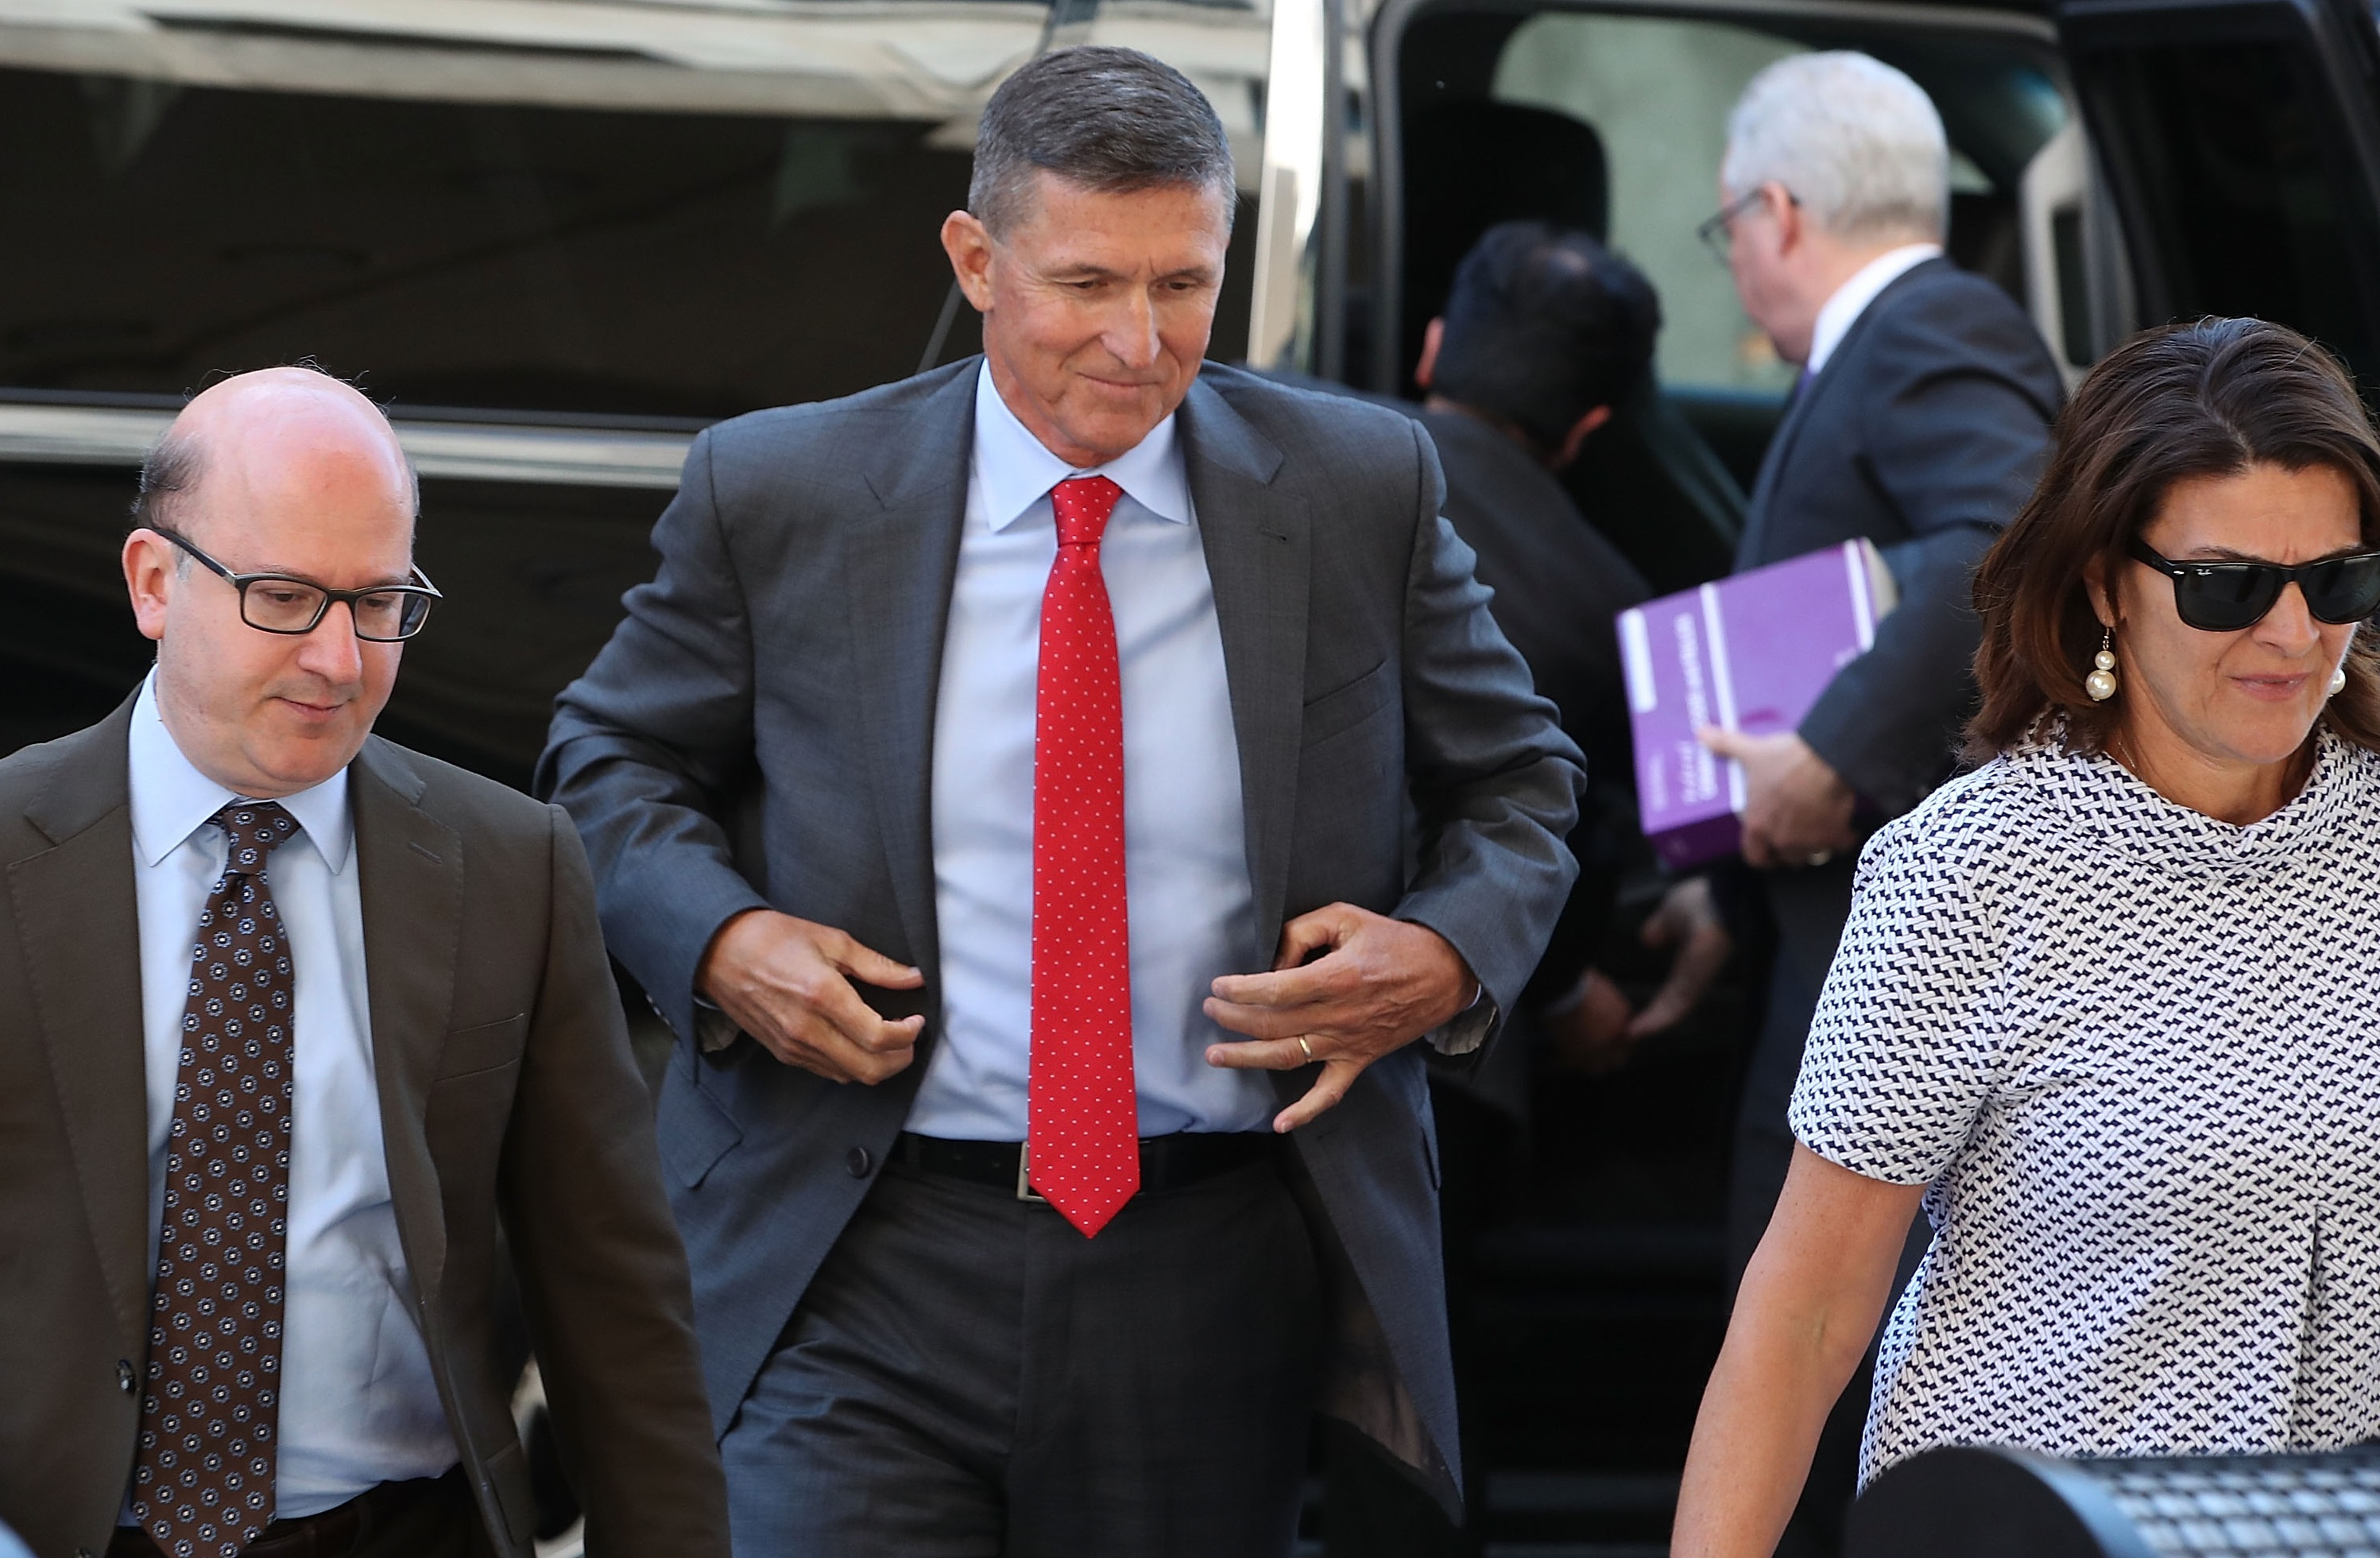 Michael Flynn, former national security advisor to President Donald Trump, arrives at the E. Barrett Prettyman Federal Courthouse in Washington